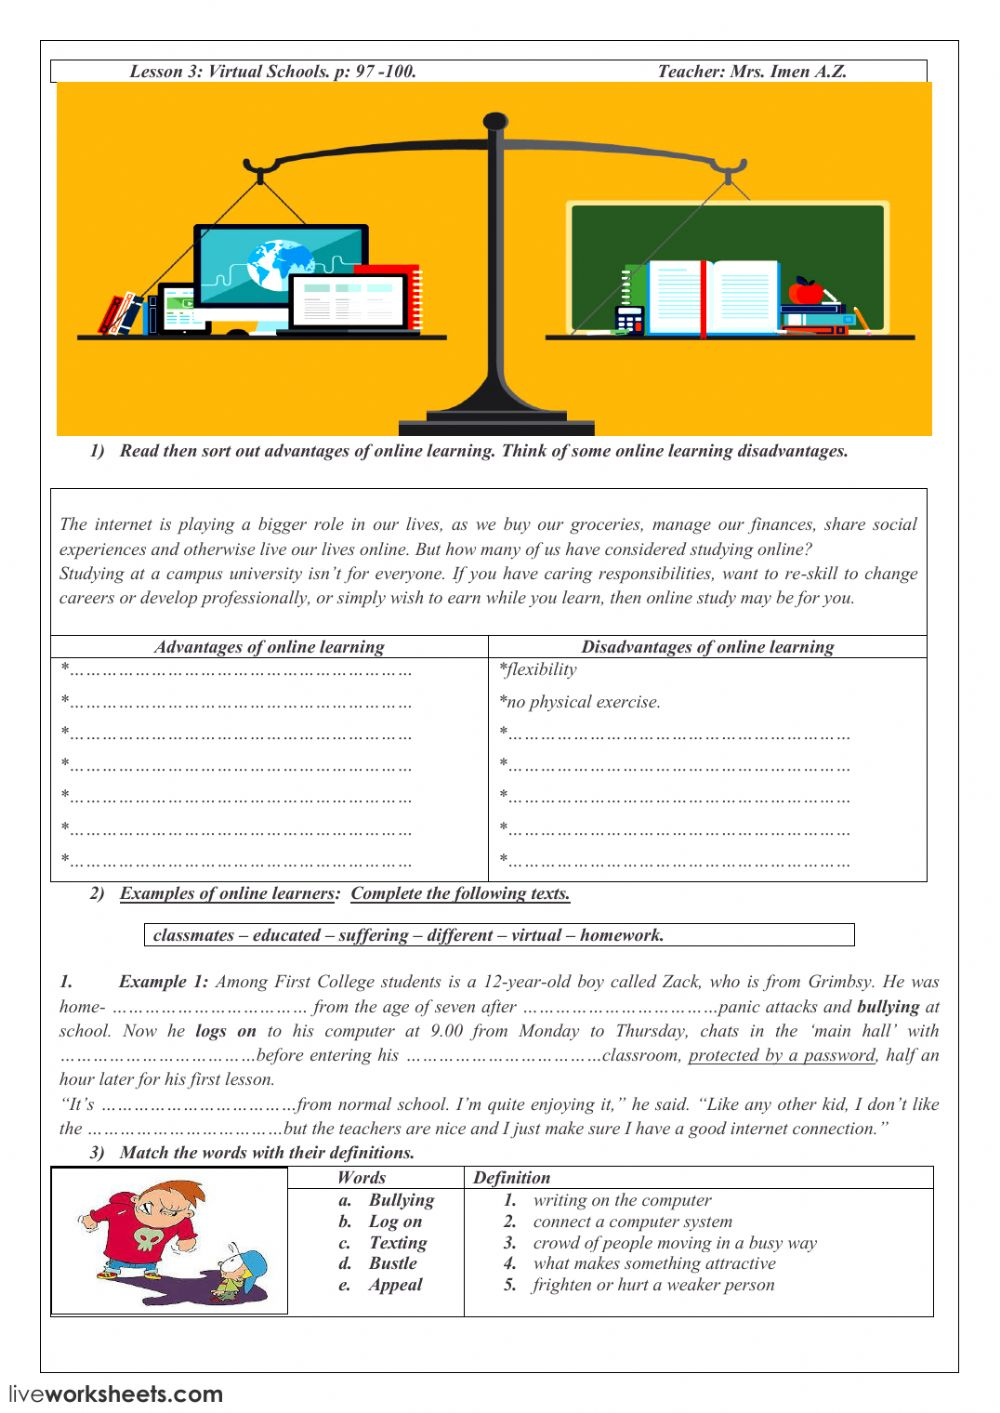 english 4u unit 1 lesson 2 Selecting an agriculture pathway lesson 3 objectives: objective 1: the learner will describe the four steps in career selection objective 2: the learner will complete a self evaluation to determine their values, interests, personality and skills to aid in.